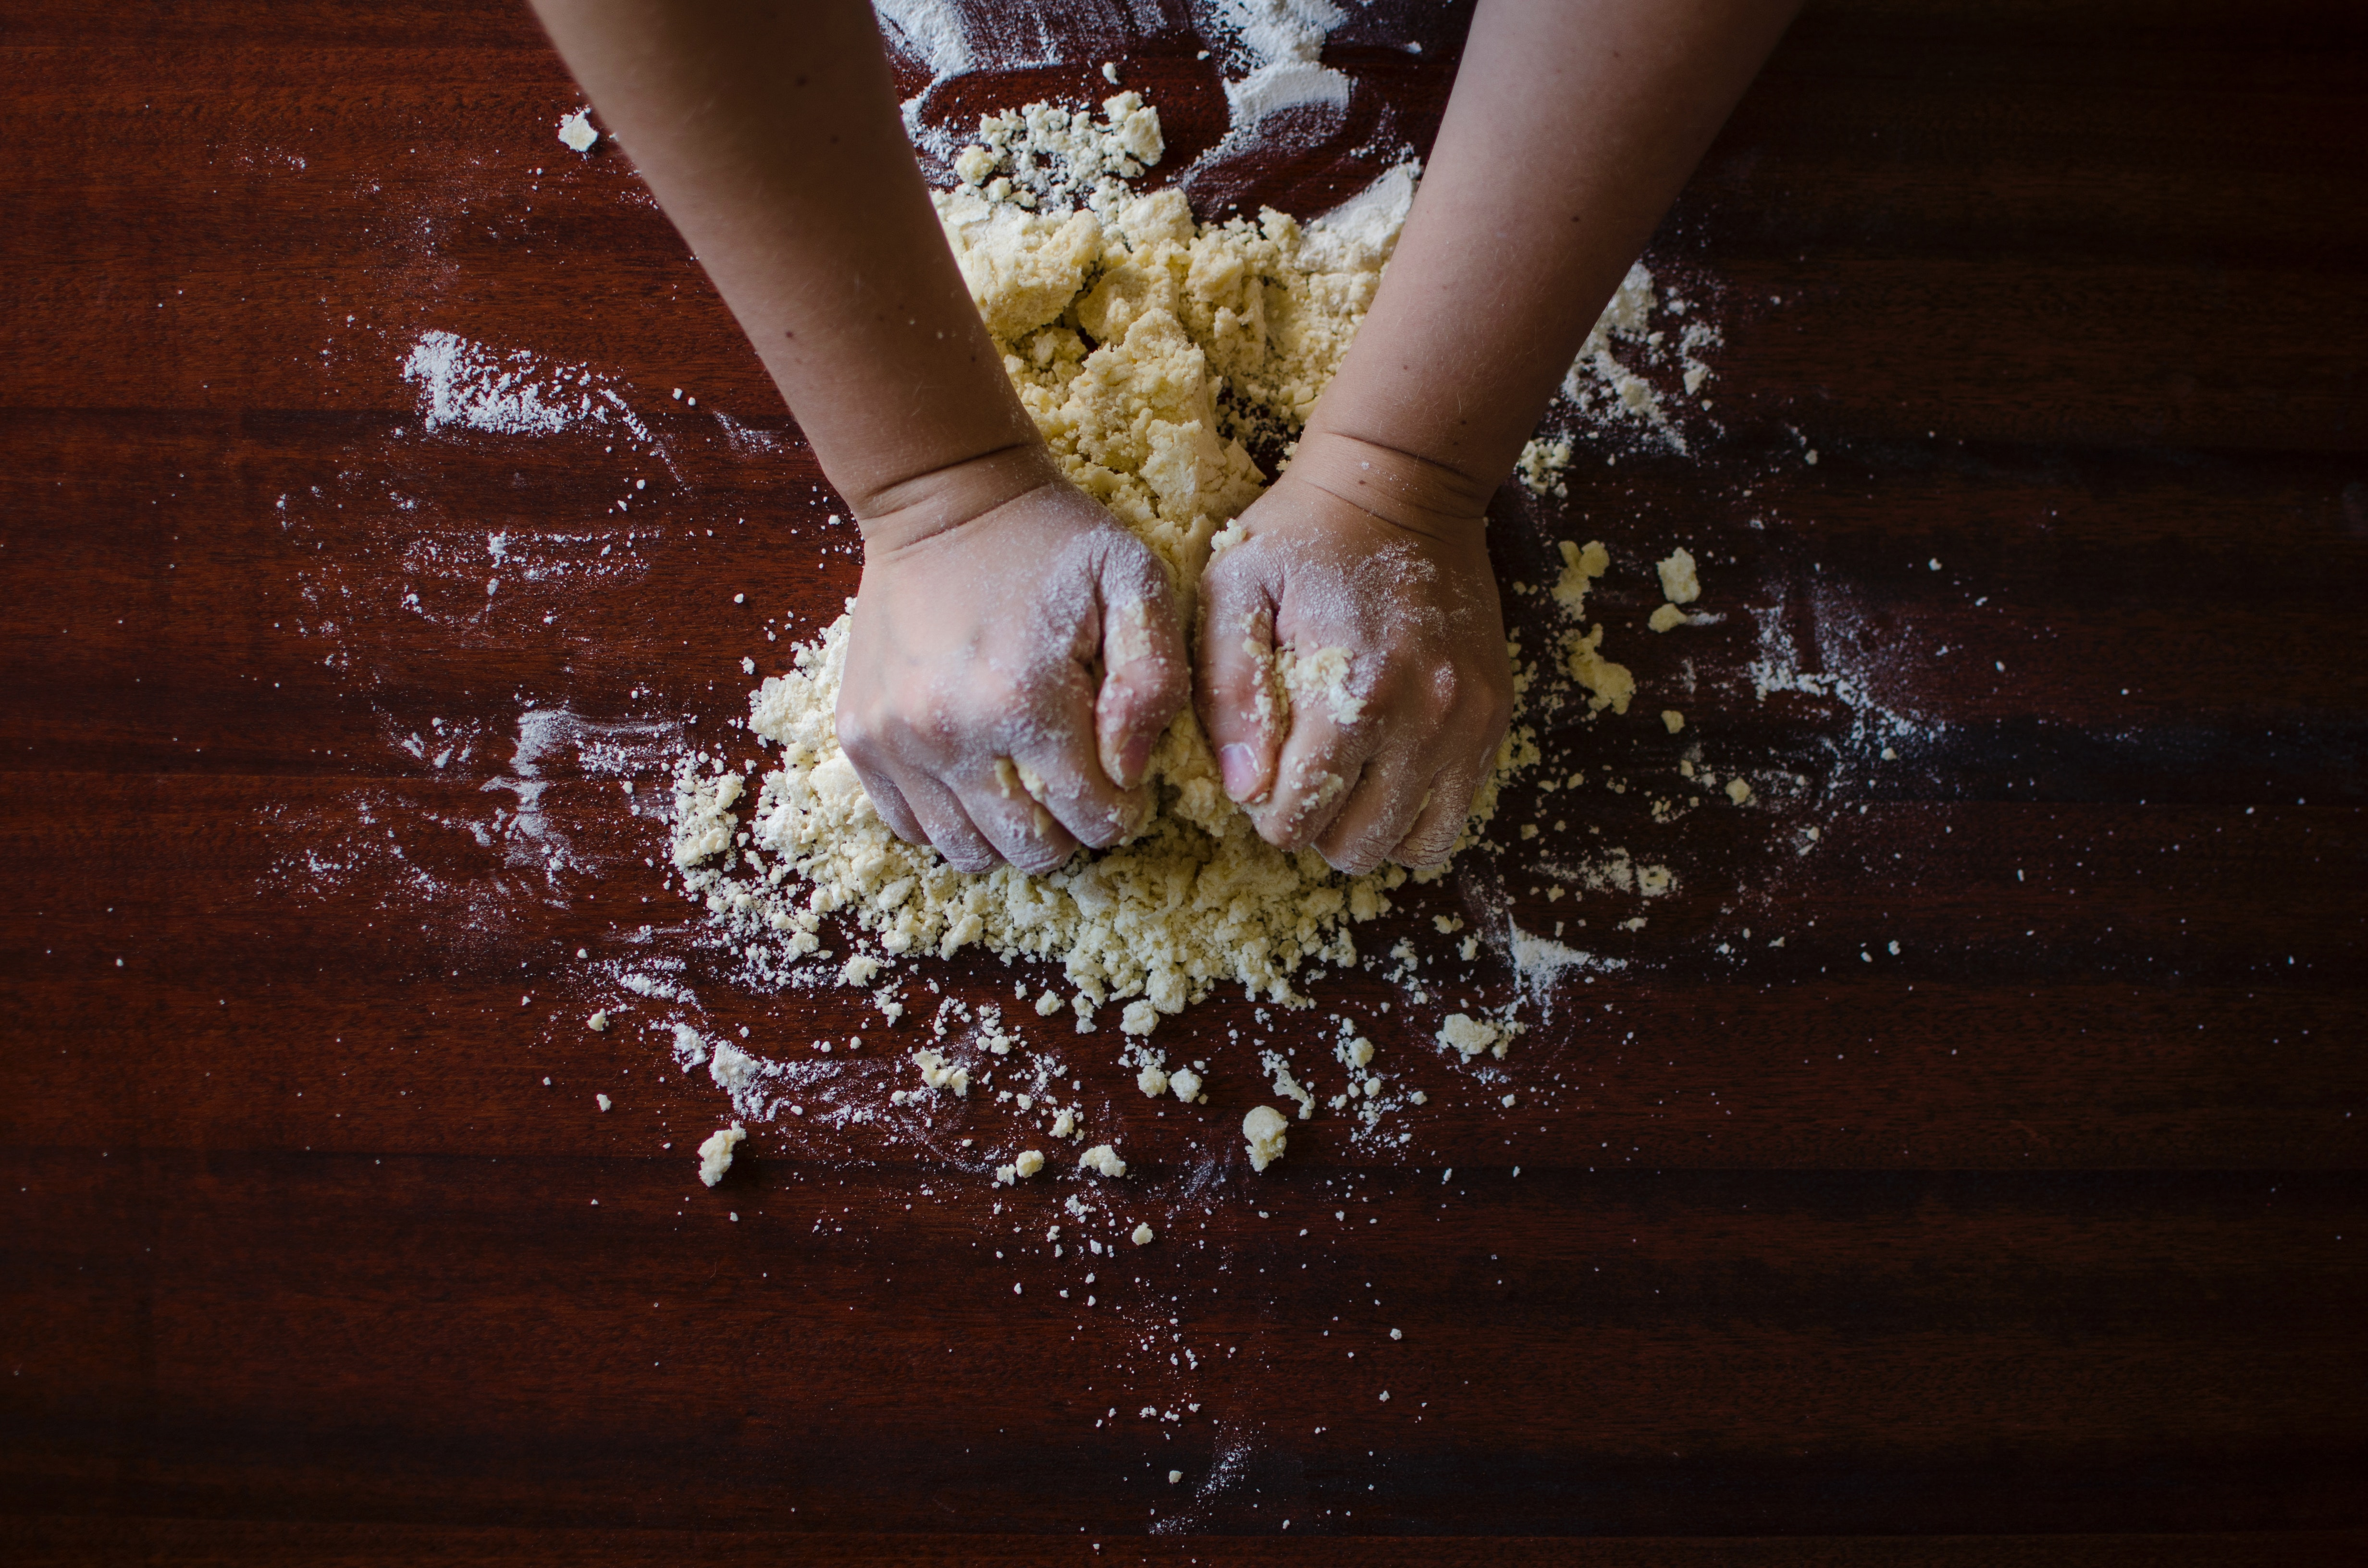 baking courses in hyderabad